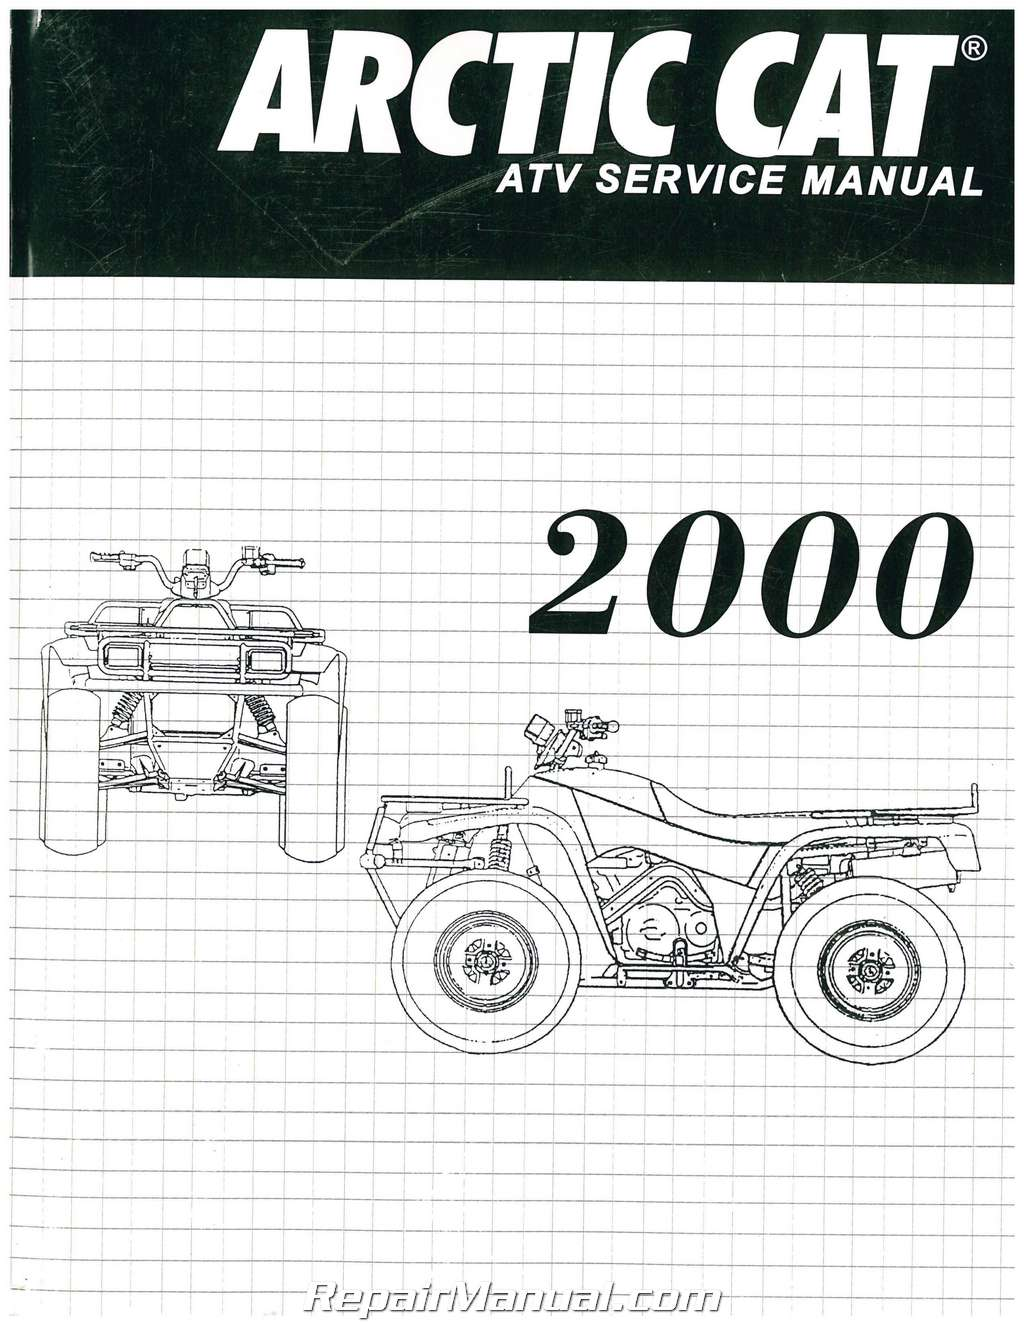 hight resolution of artic cat atv wiring electrical wiring diagram arctic cat 250 4x4 wiring diagram